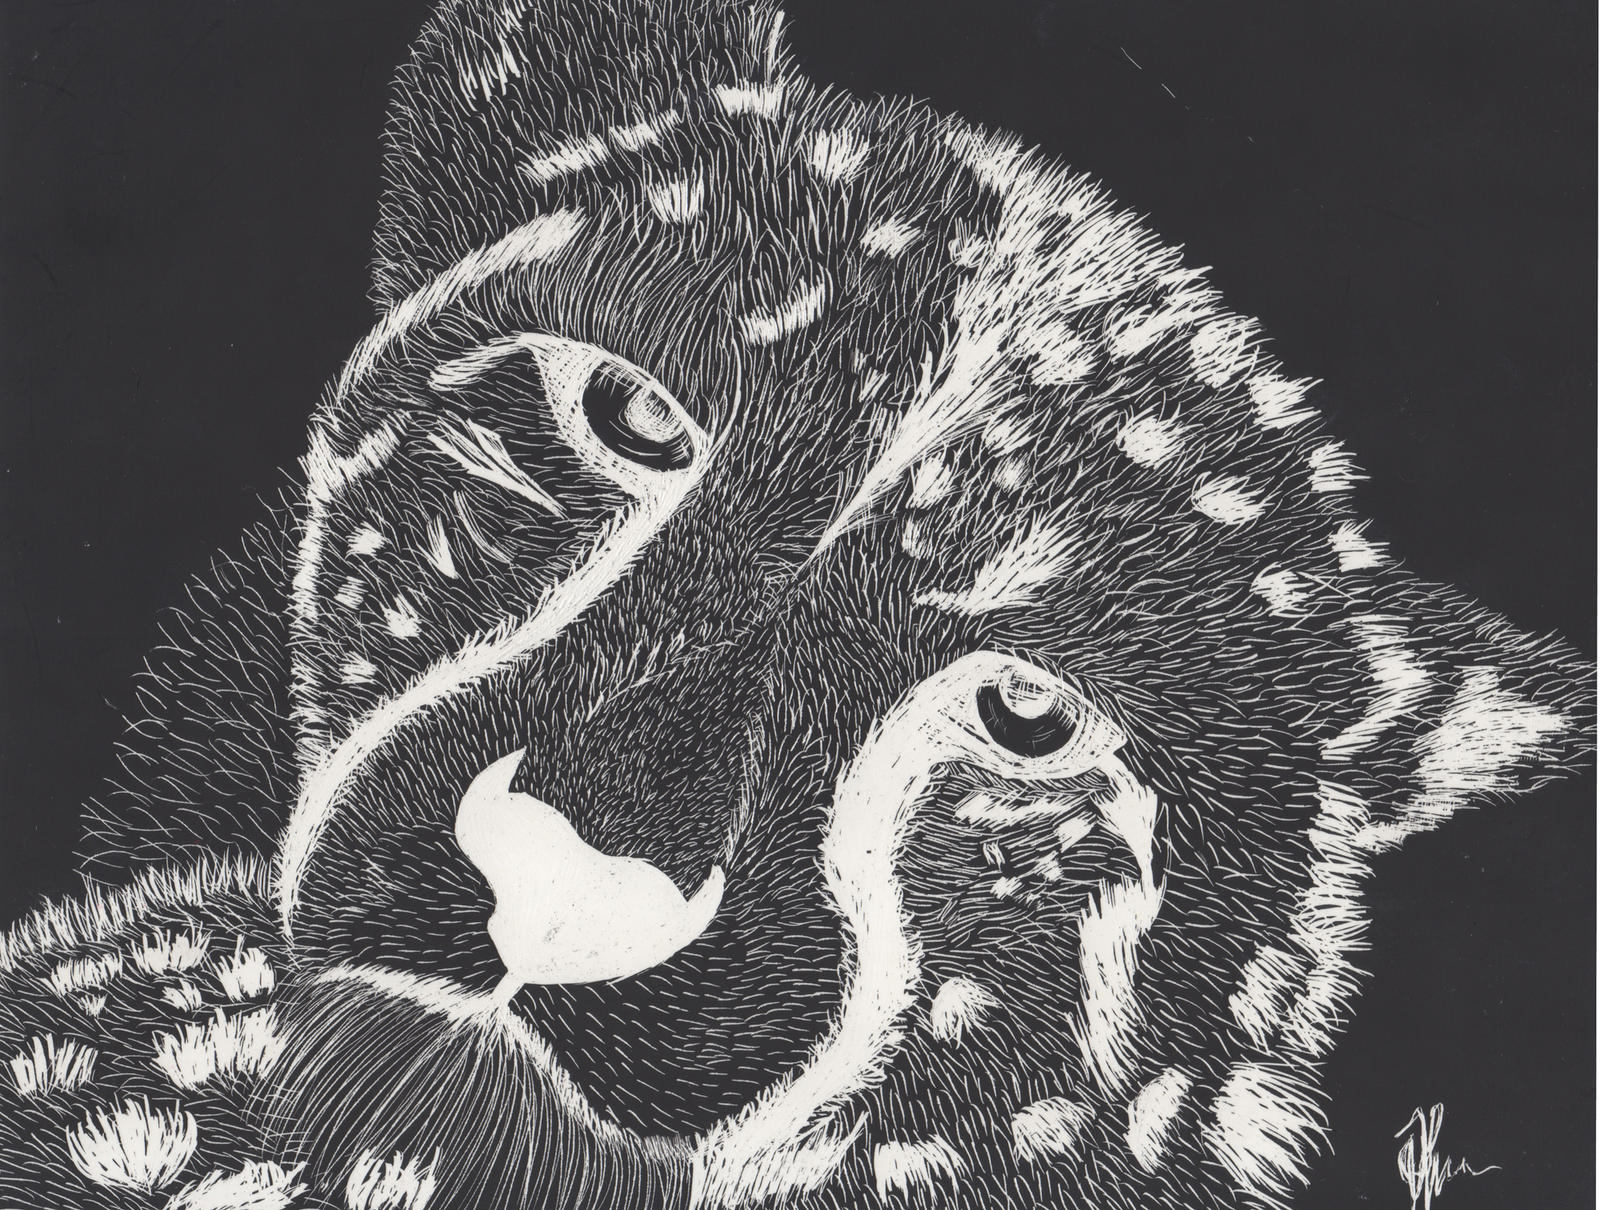 Cheetah v3 (Scratchboard) by ArtBourne